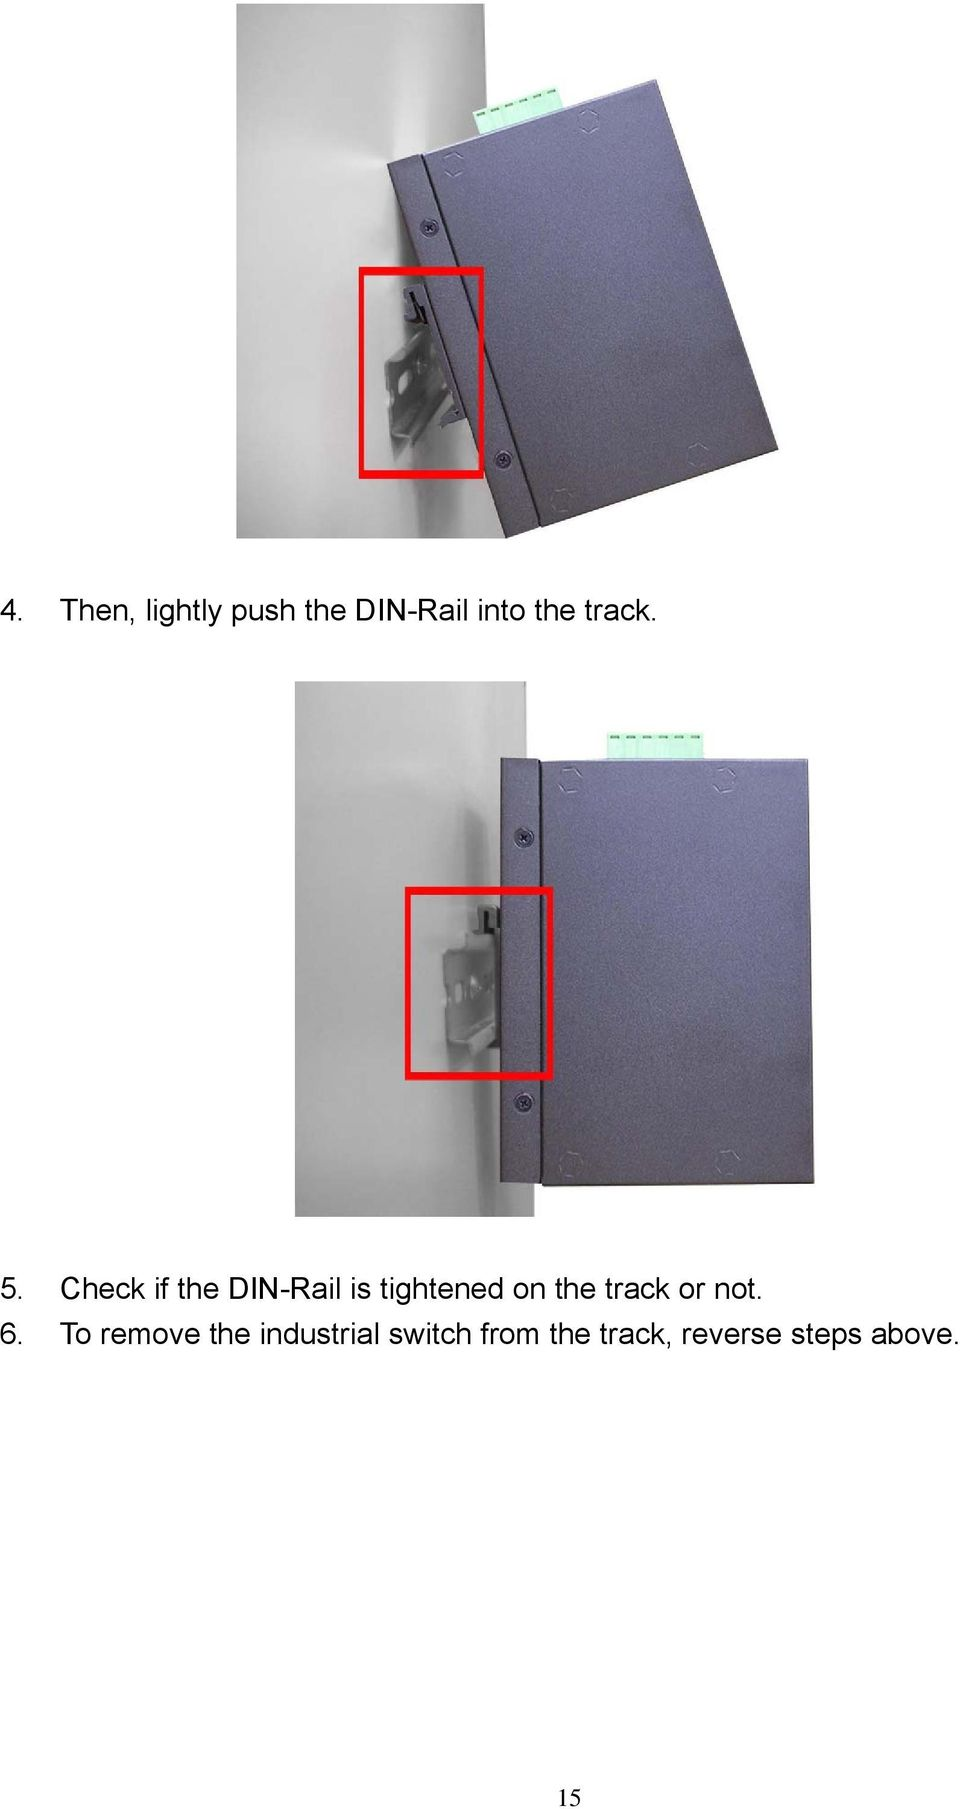 Check if the DIN-Rail is tightened on the